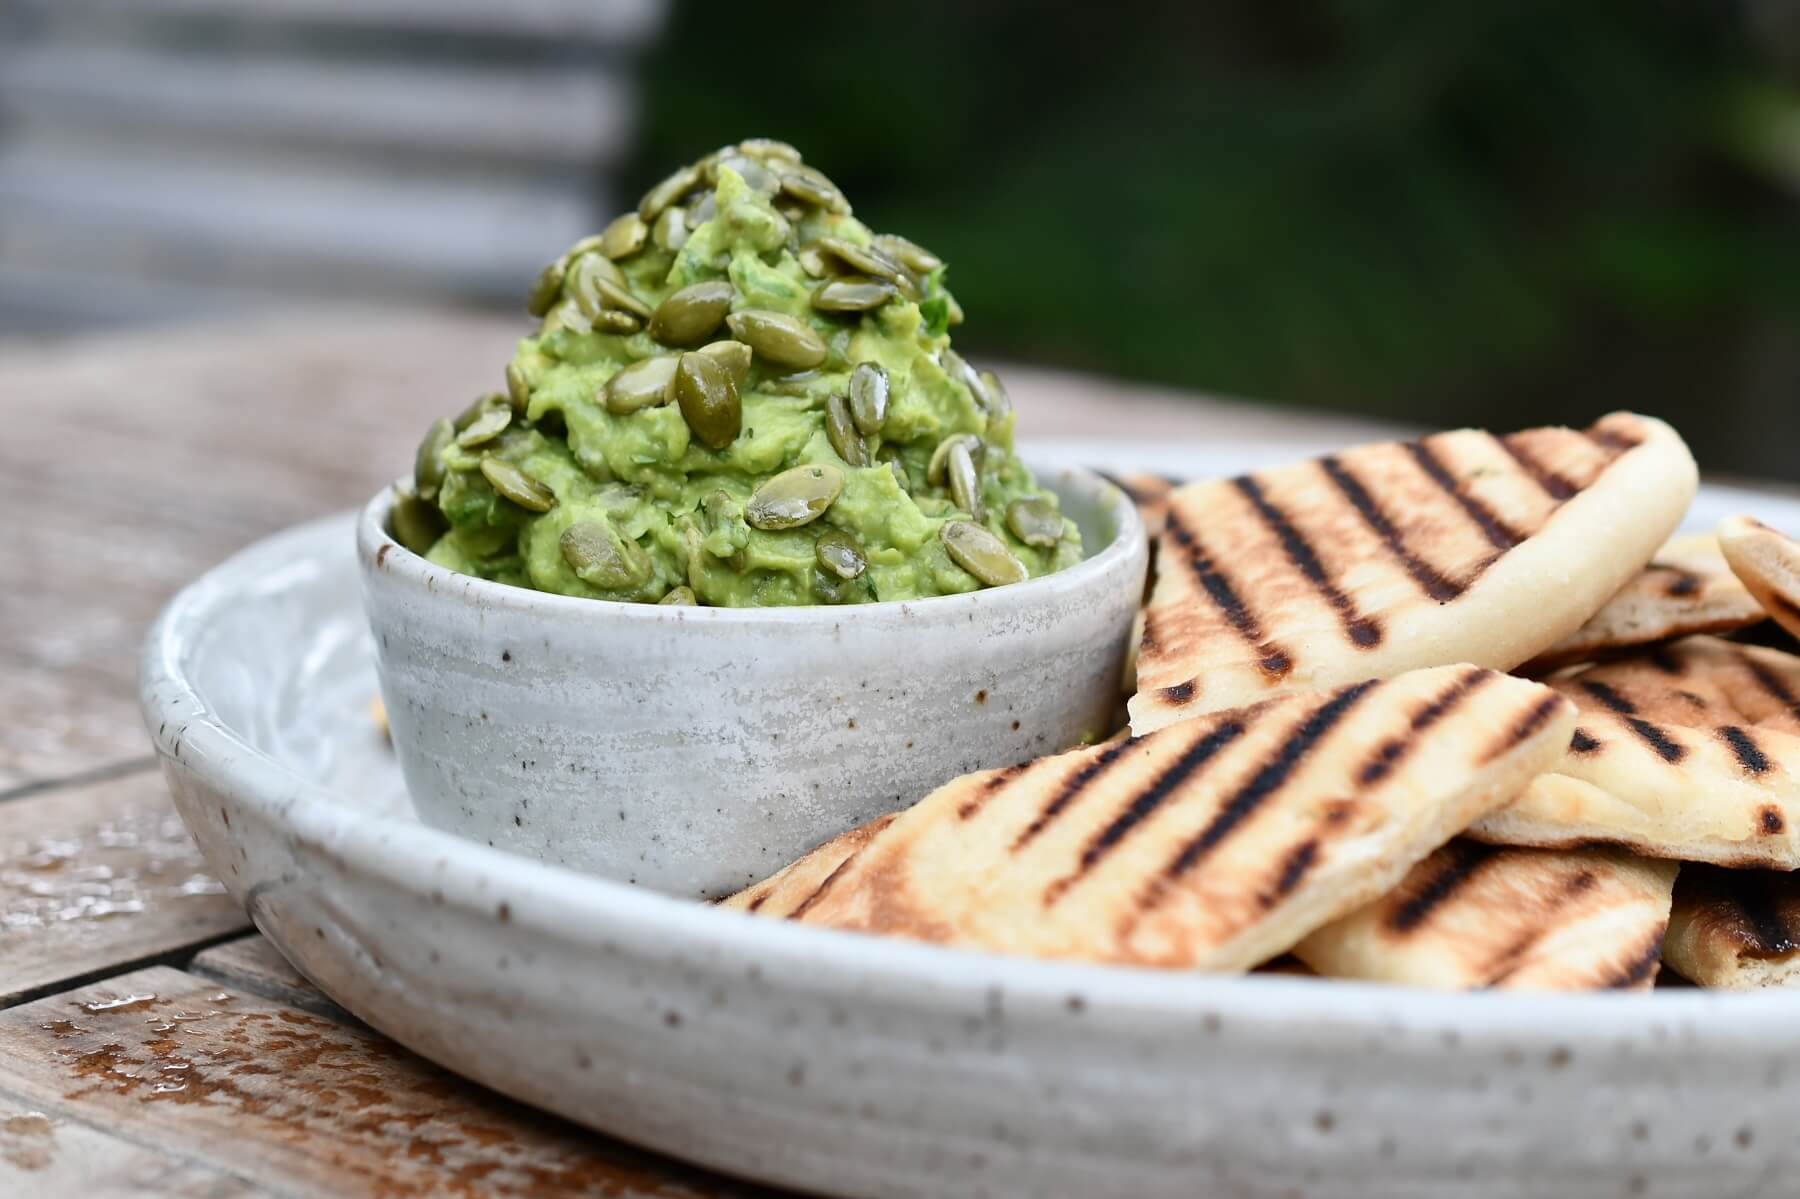 Curried Avocado with Grilled Naan